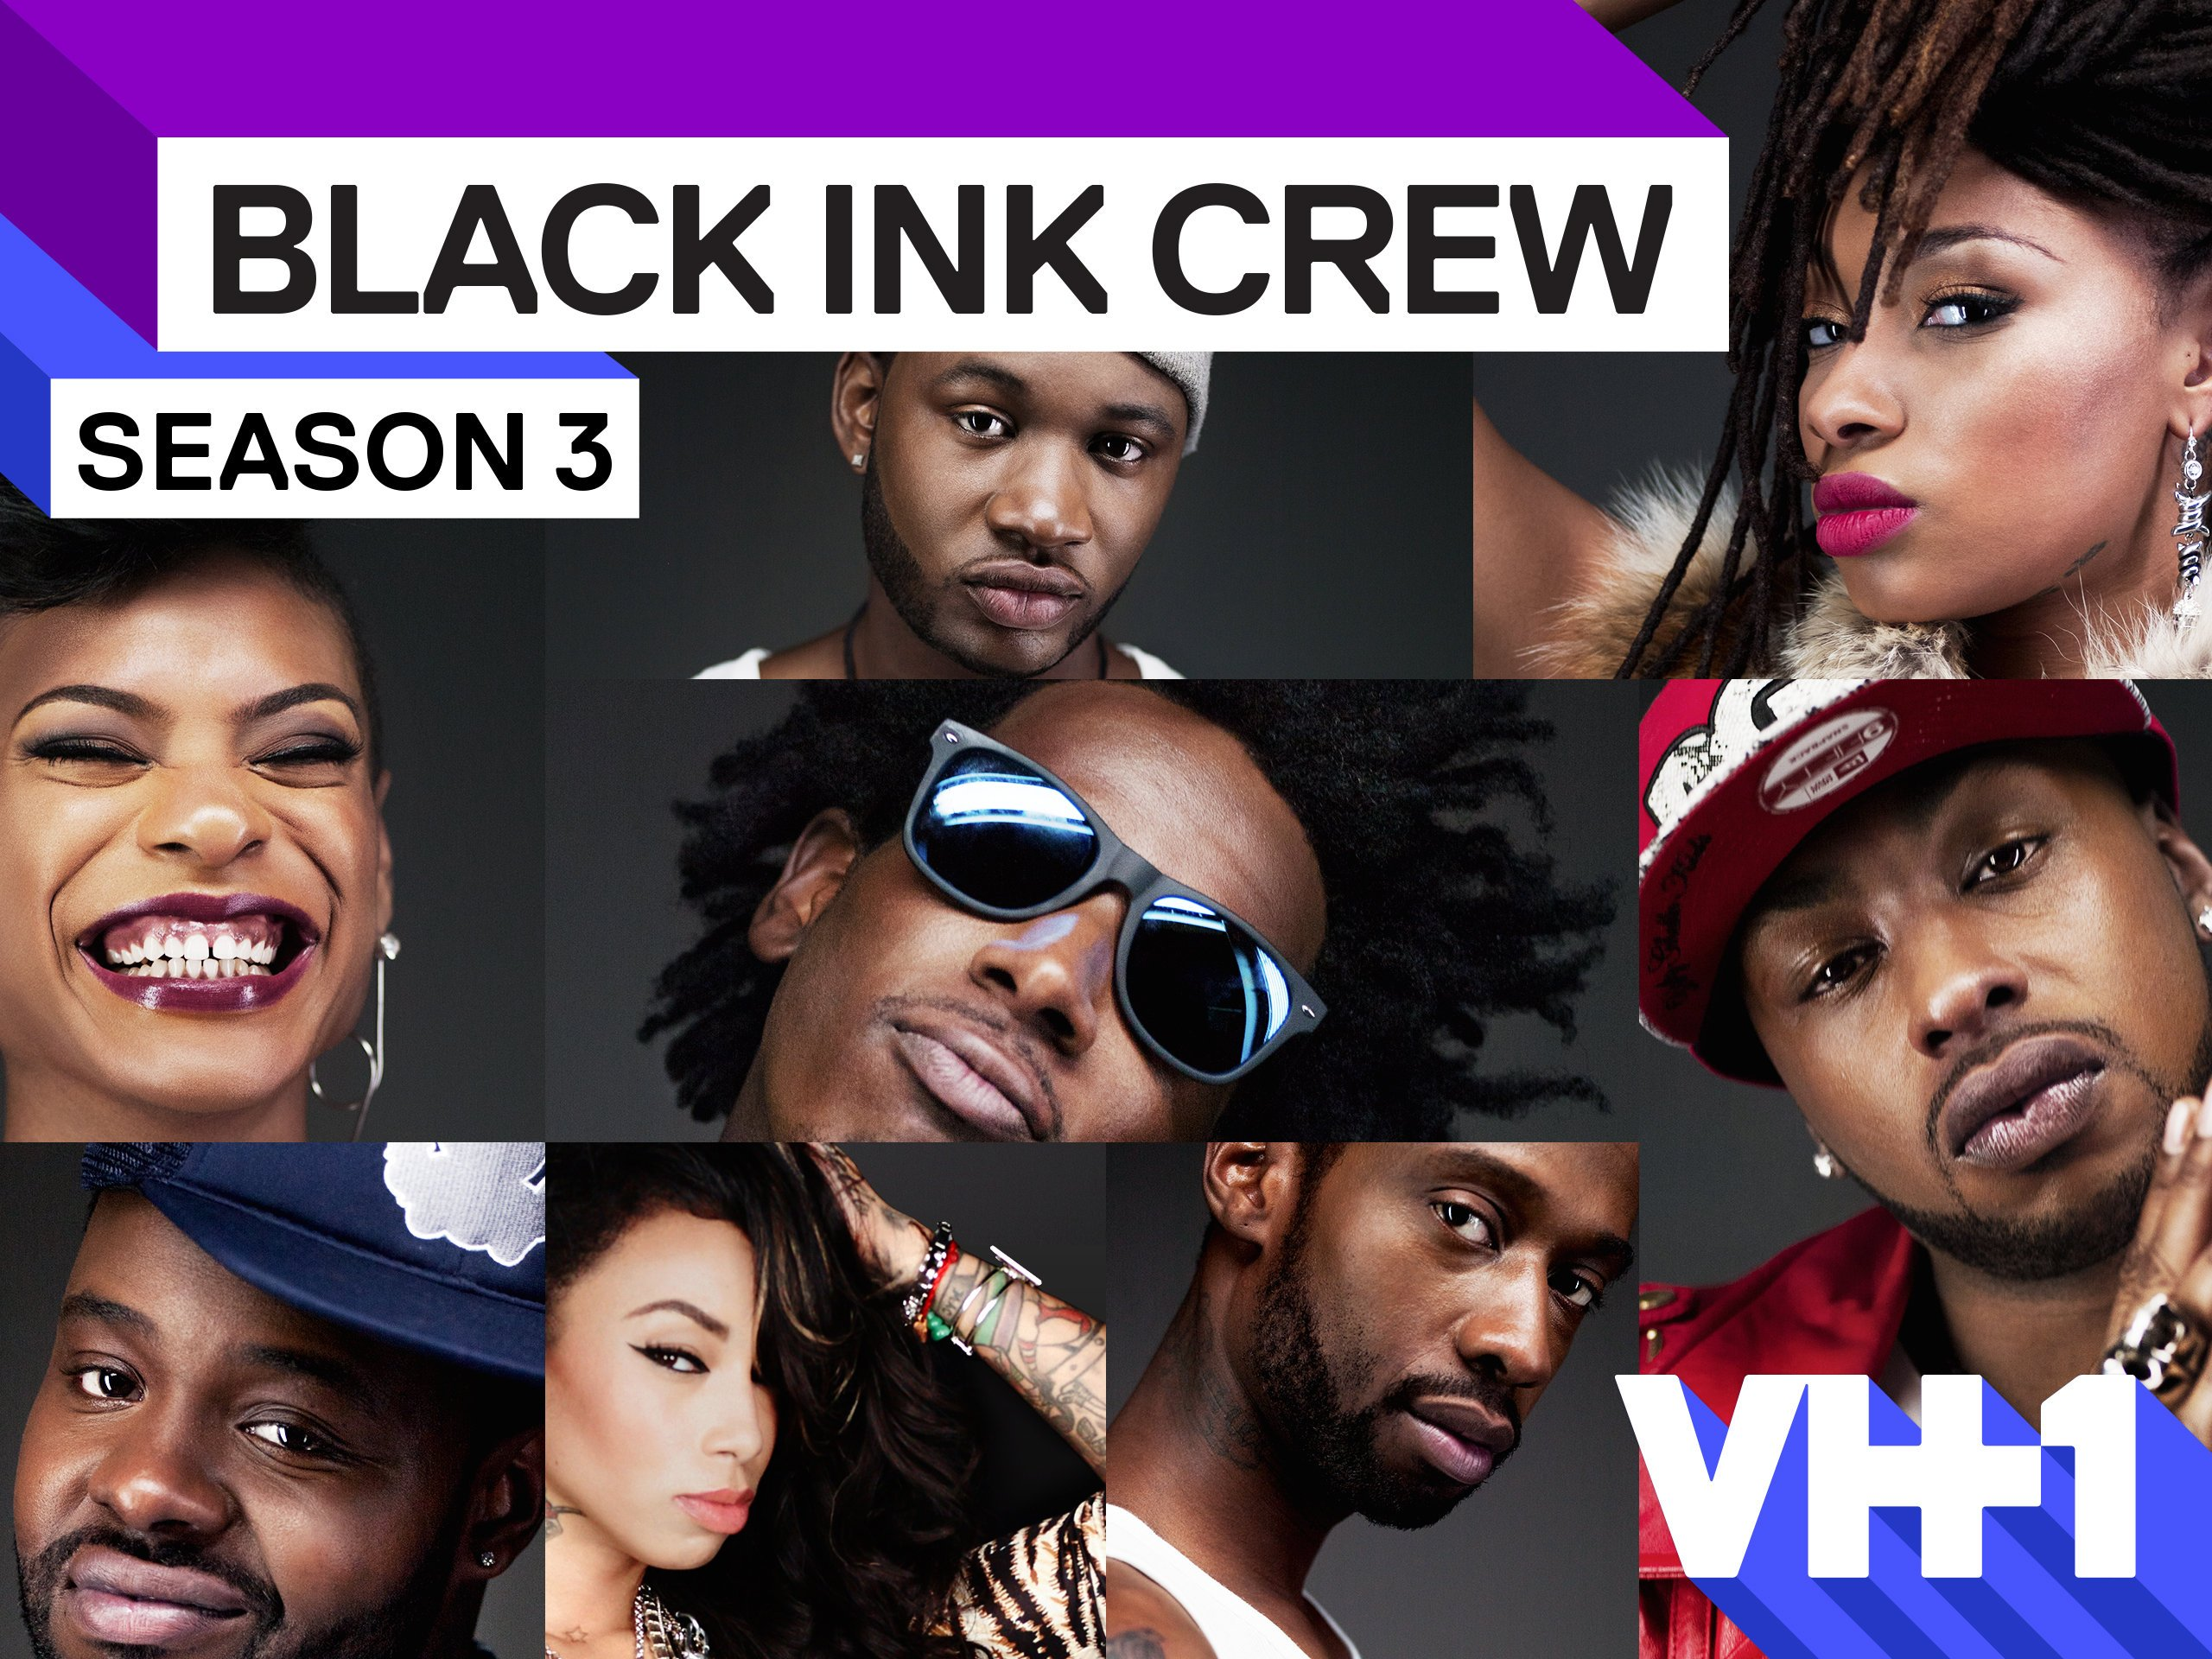 Will there be another season of black ink crew